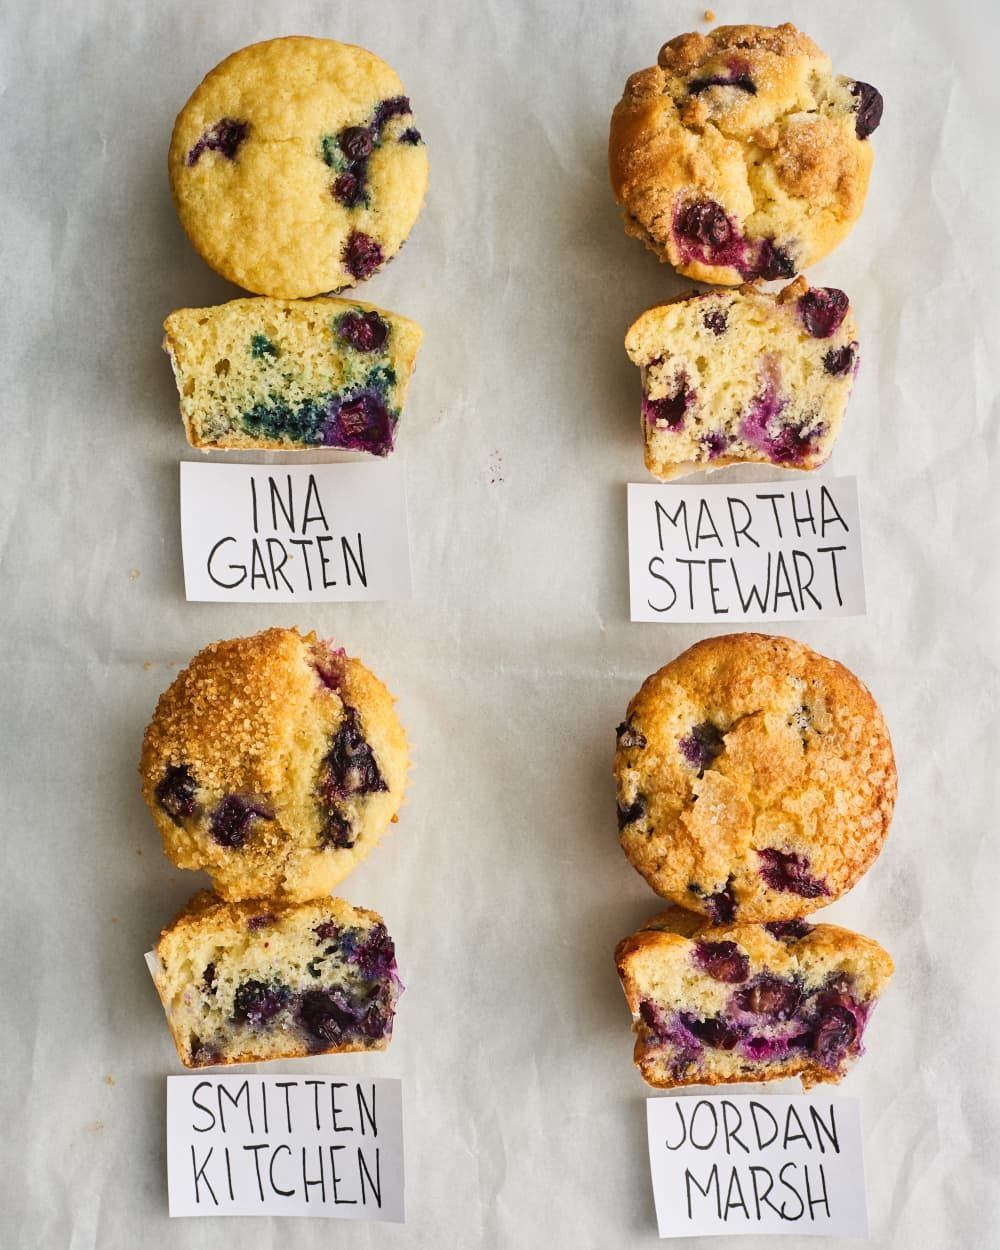 We Tested 4 Famous Blueberry Muffins And Found A Clear Winner Muffin Recipes Blueberry Best Blueberry Muffins Blue Berry Muffins